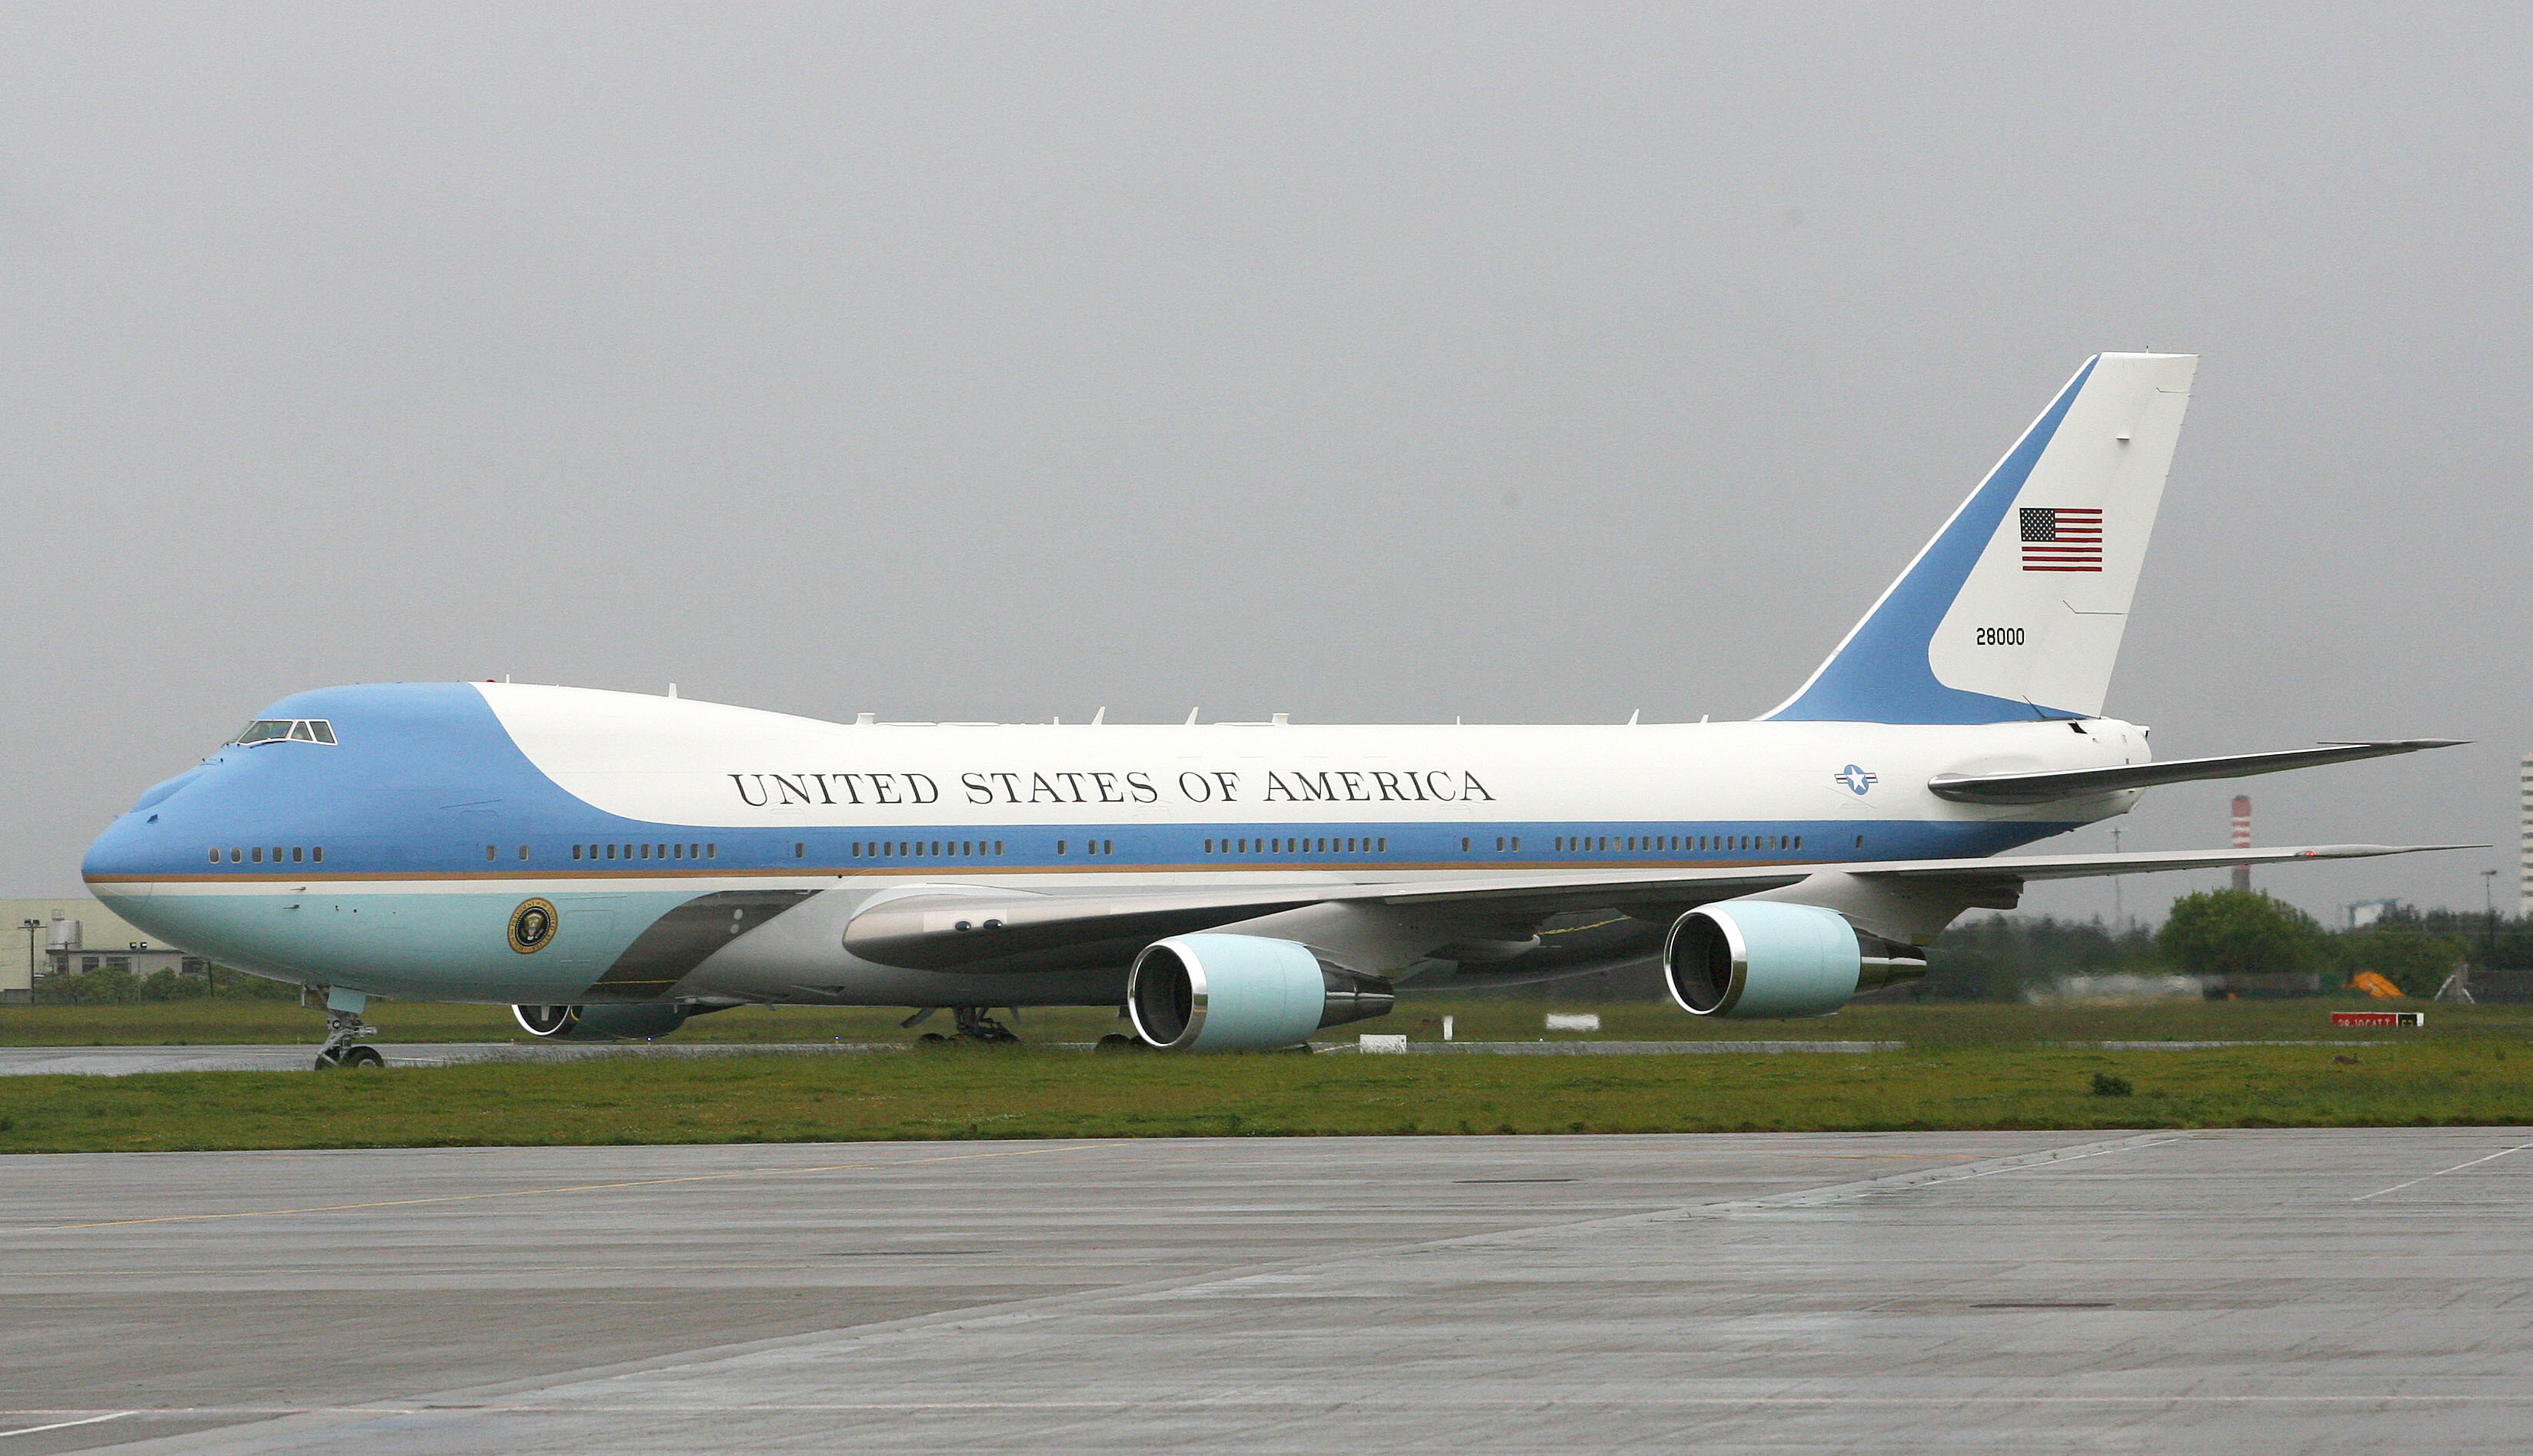 A fresh new paint job for Air Force One may be underway